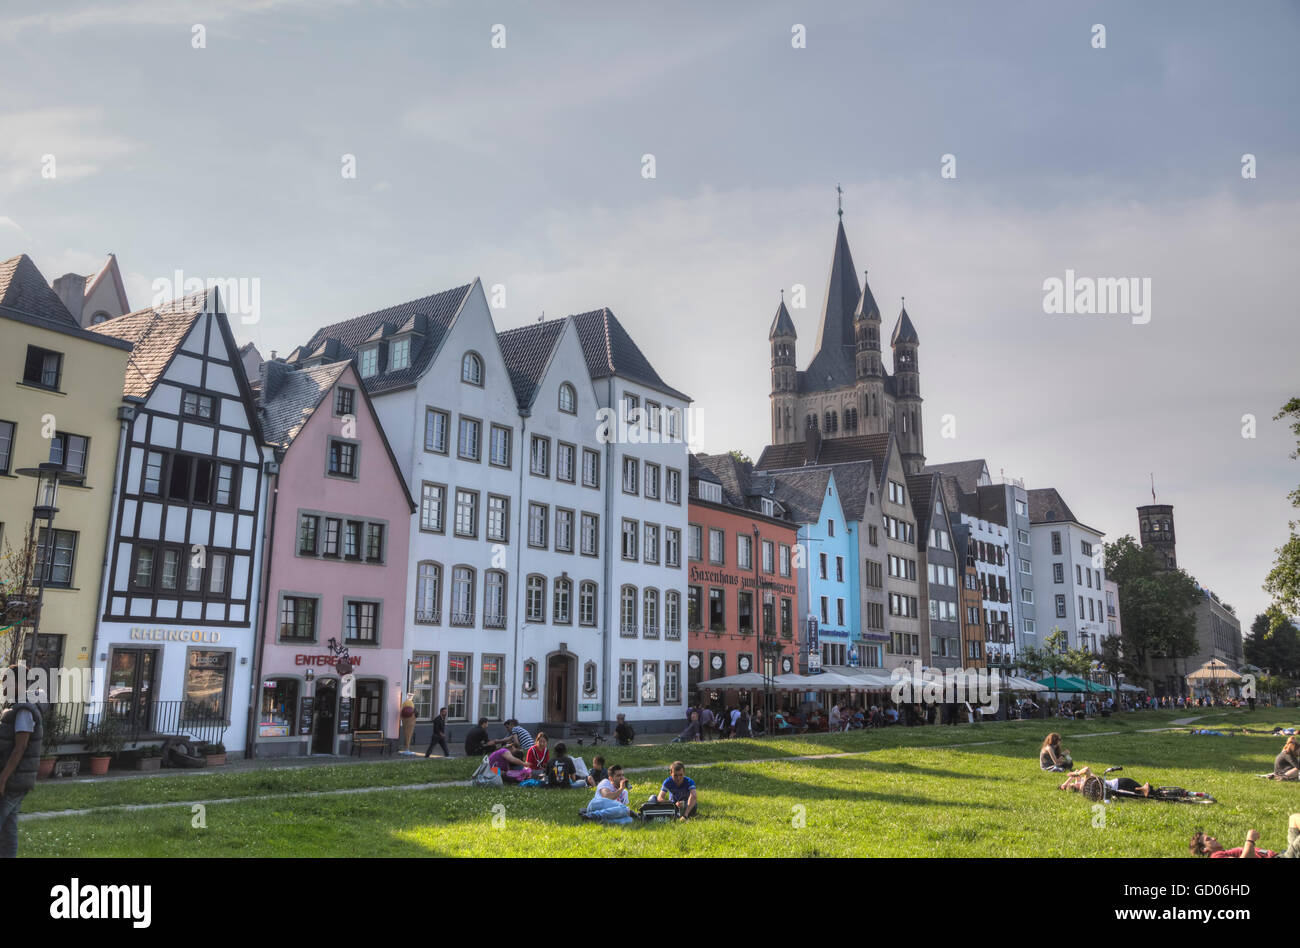 COLOGNE, GERMANY - JUNE 8: People at the old city center on June 8, 2016 in Cologne, Germany. - Stock Image